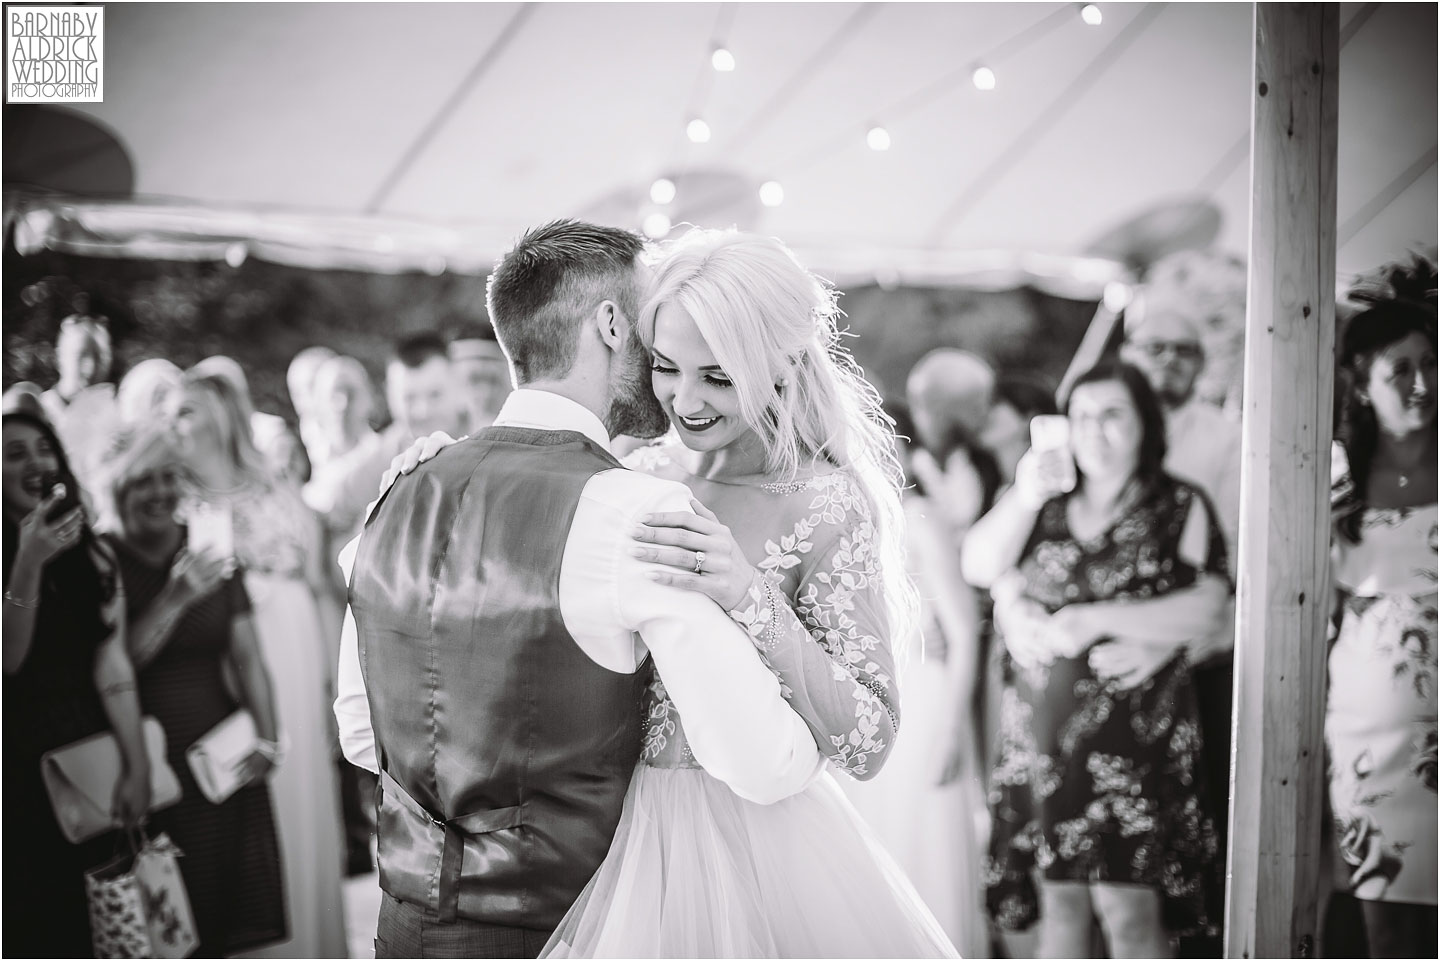 First Dance photos at Saltmarshe Hall near Goole in East Yorkshire, Wedding photography at Saltmarshe Hall, East Yorkshire Wedding Photographer Barnaby Aldrick